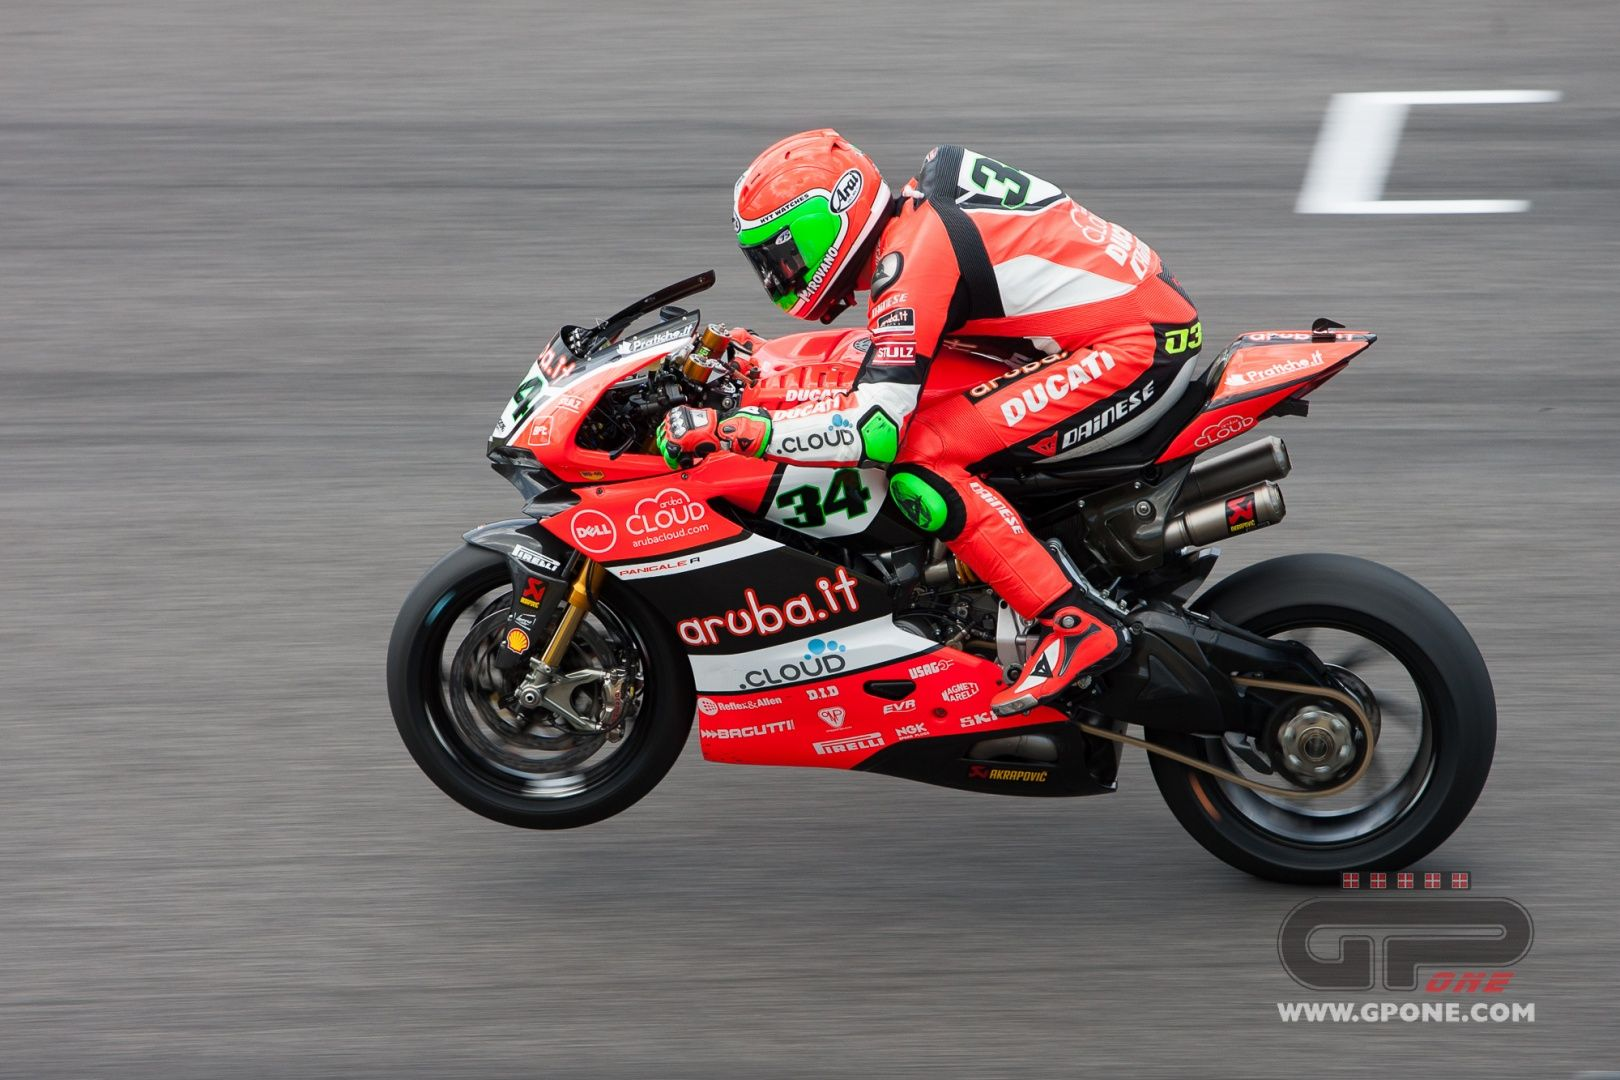 """SBK, Davies: """"Forced to recover after making contact"""" 